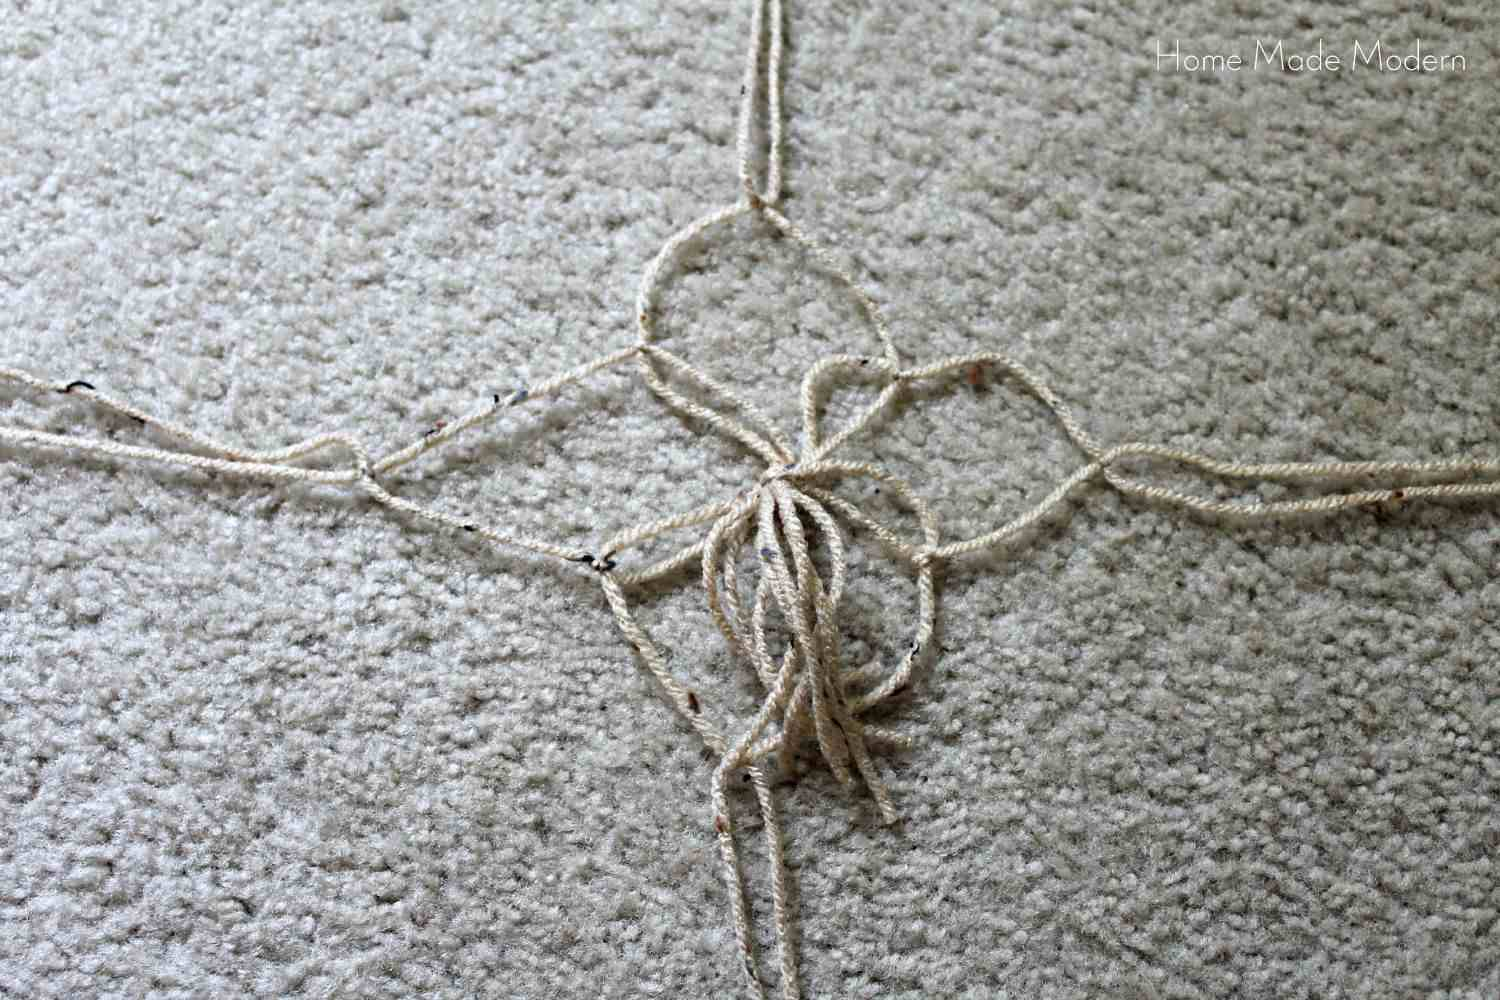 tying the second knot for the macrame hanging plant holder